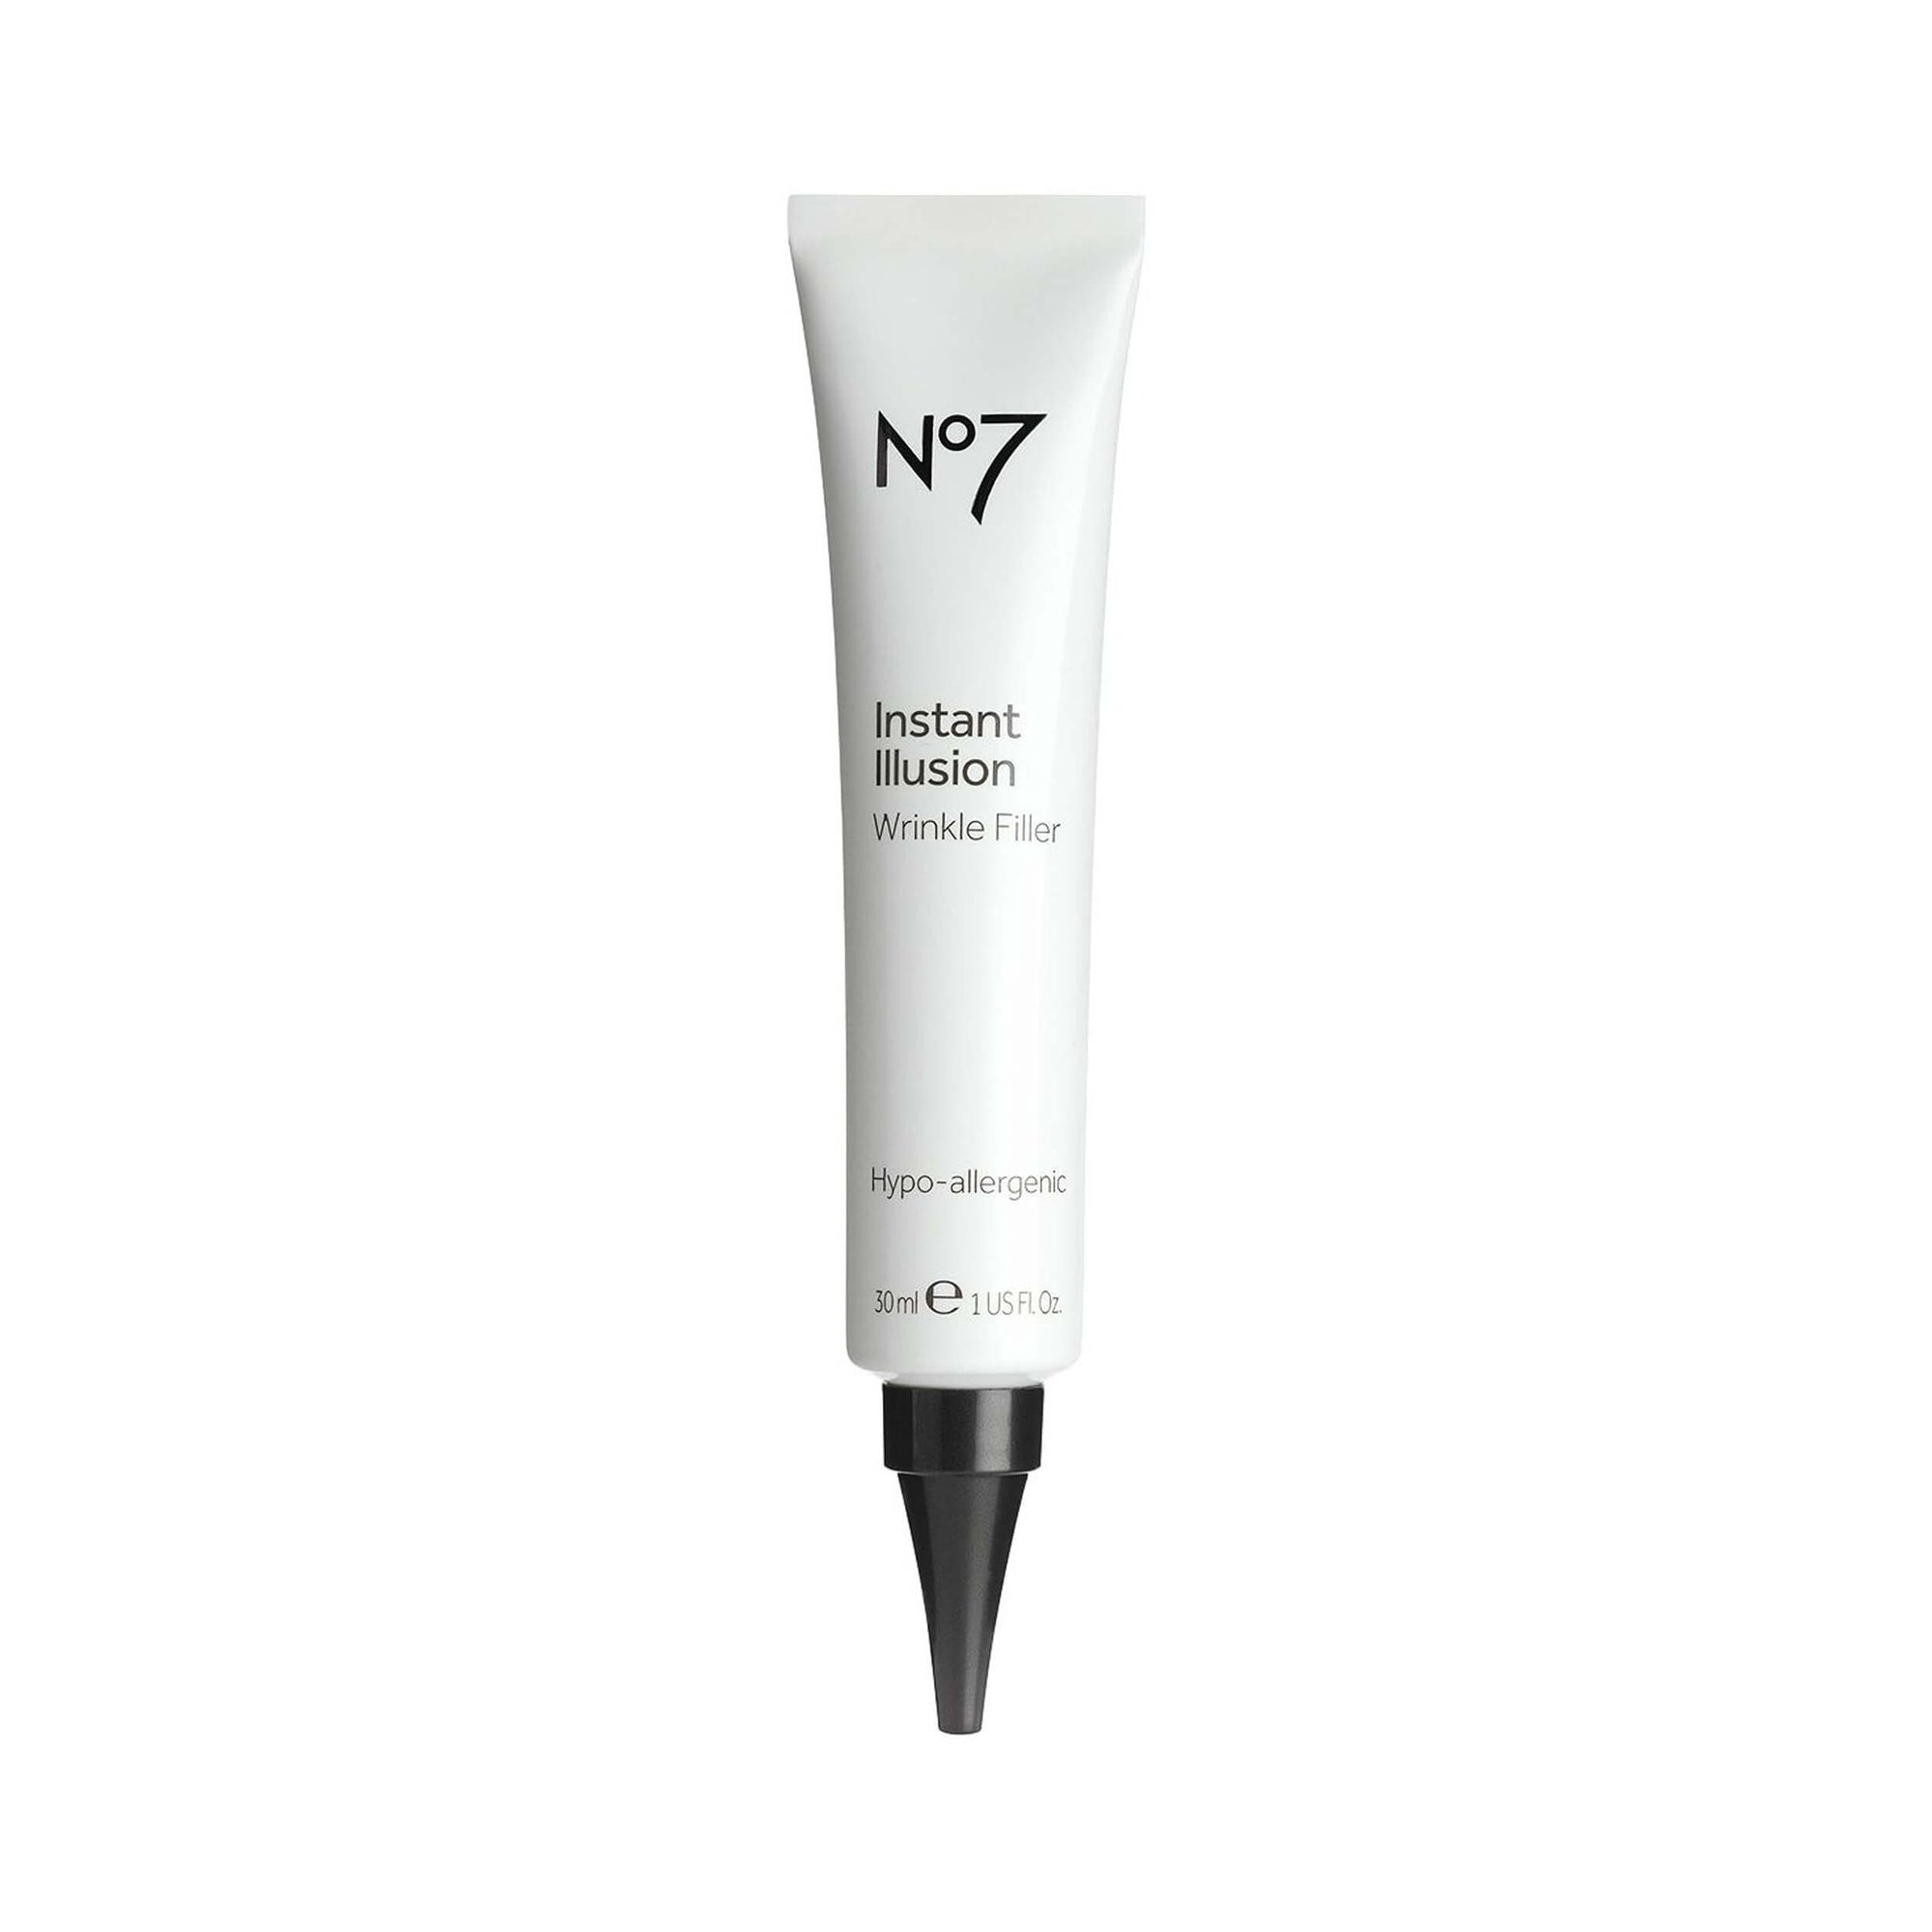 No7 Instant Illusions Wrinkle Filler 30 mL